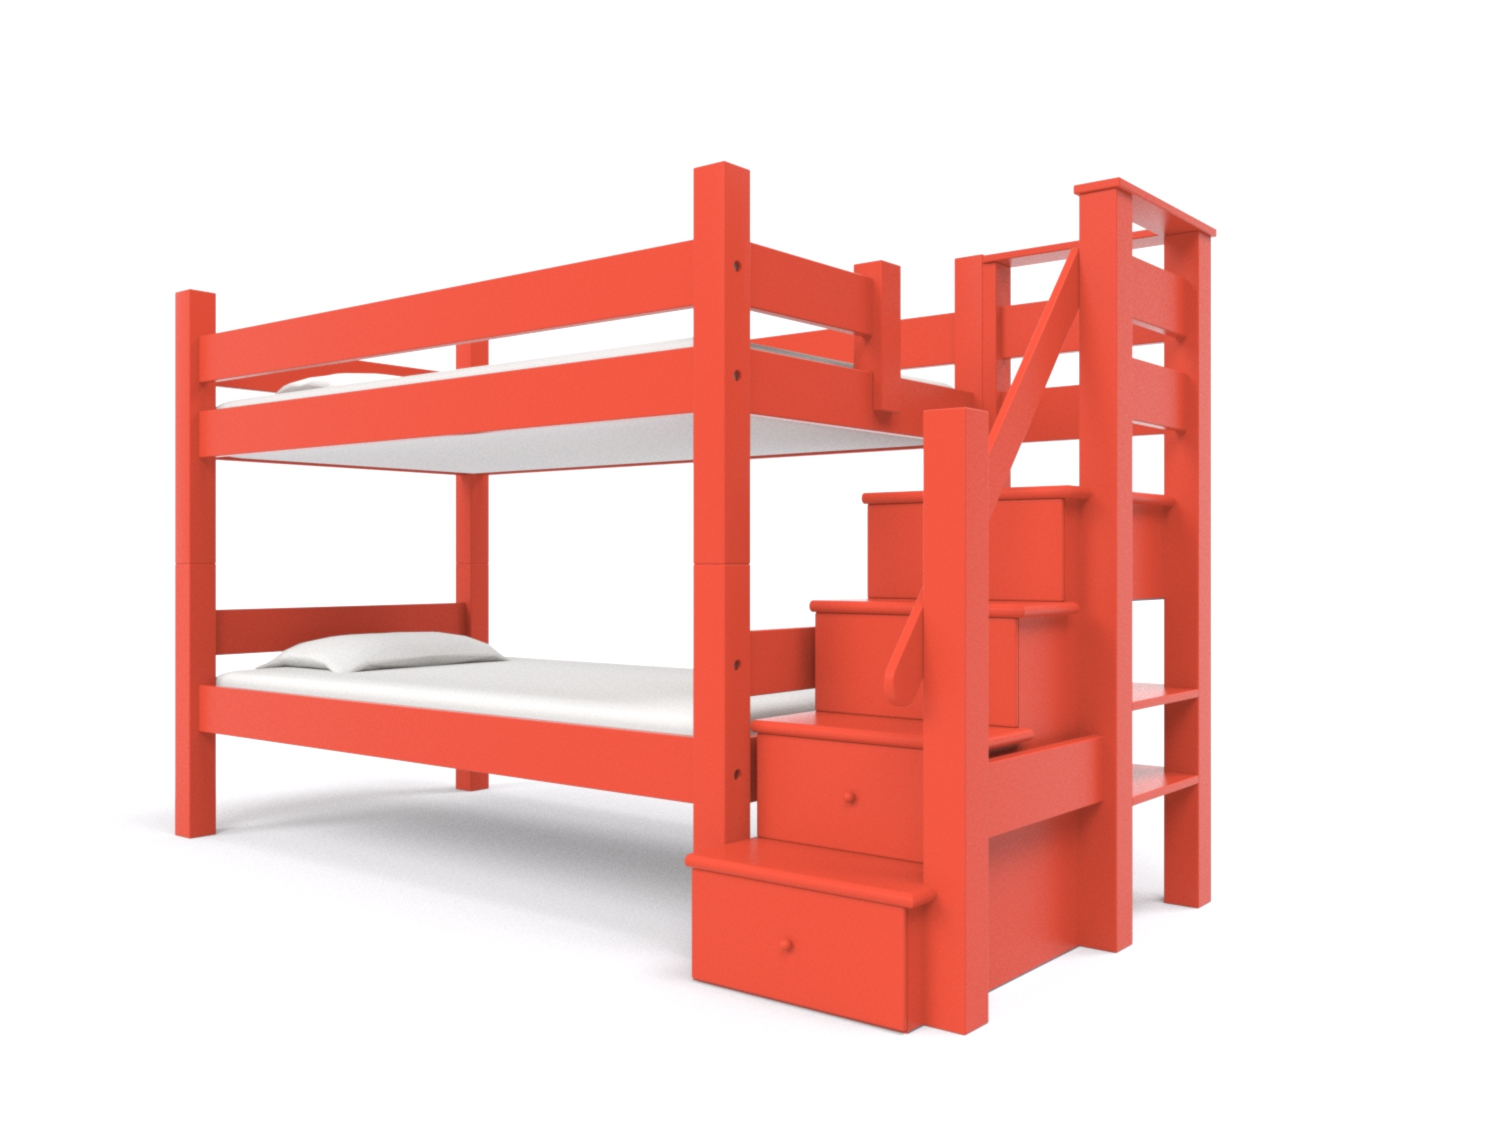 BUNK BED w/ STAIRCASE  -  An attached staircase with four built-in storage drawers that serve as steps to upper bunk. Available on all sizes of bunk beds and lofts. Made to hold adults!  Bunk Bed + Staircase: $3995:   Click for Custom Quote